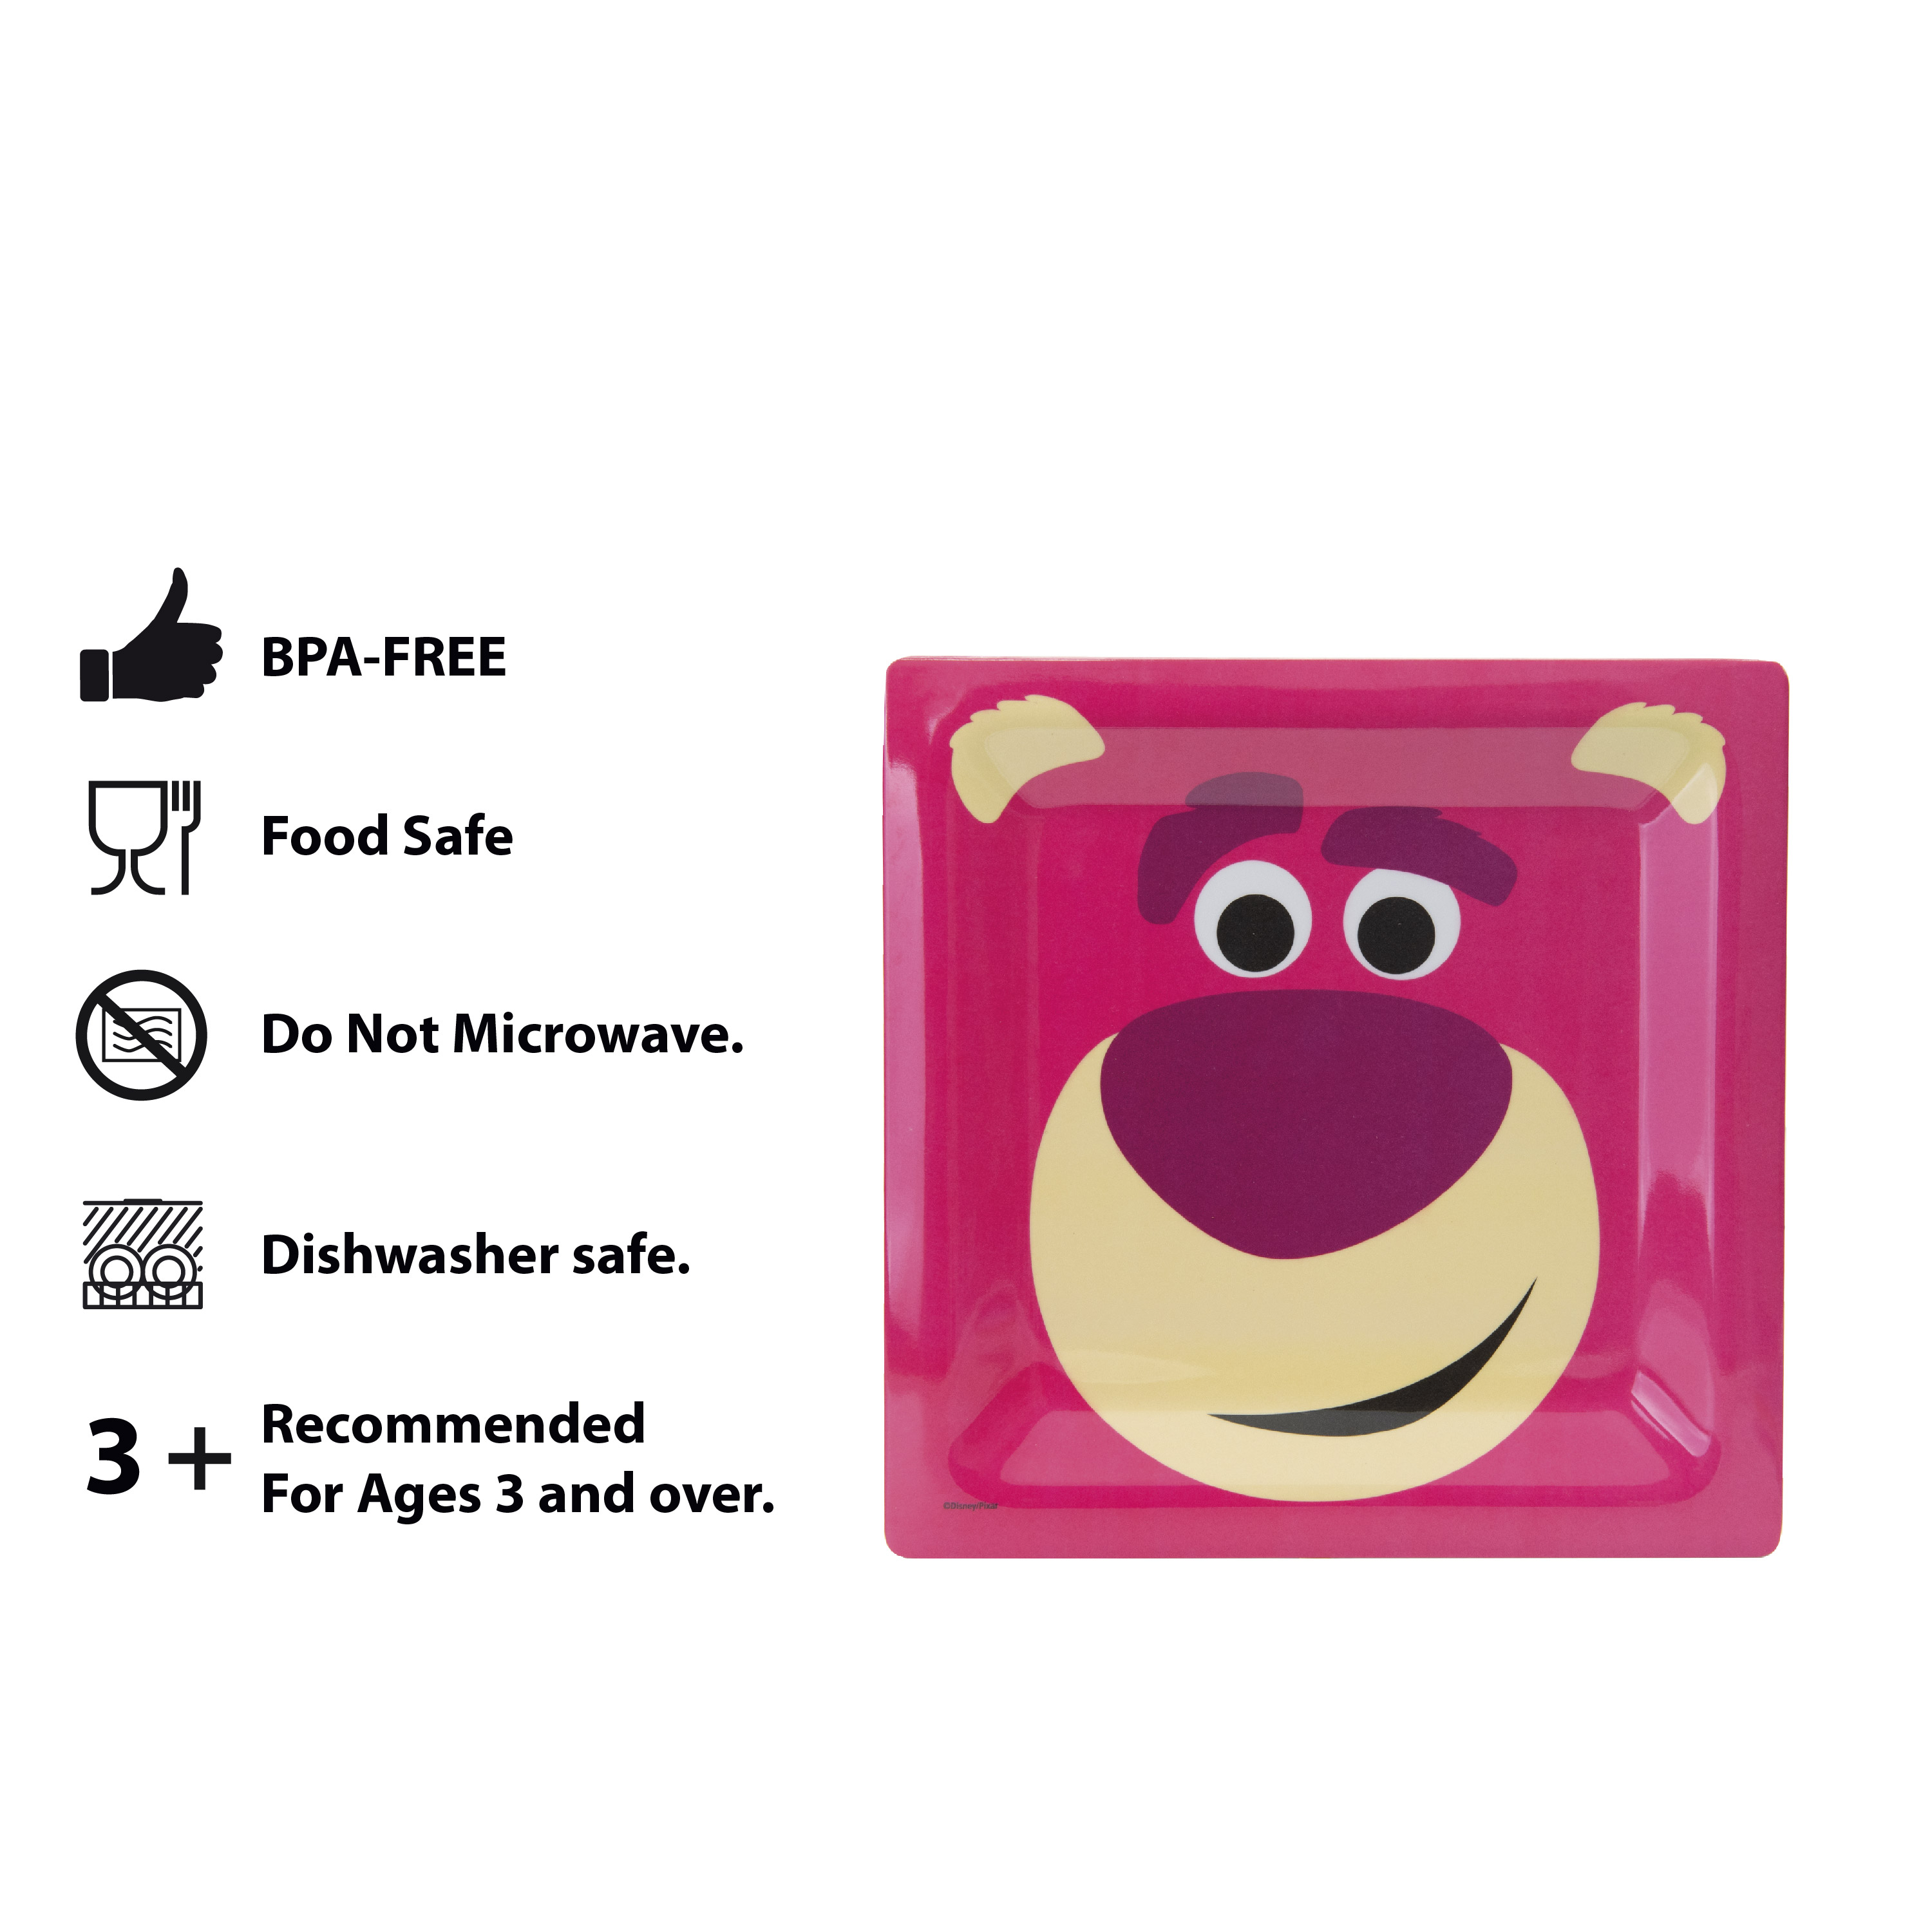 Disney and Pixar Toy Story 4 Plate and Bowl Set, Lotso, 2-piece set slideshow image 11